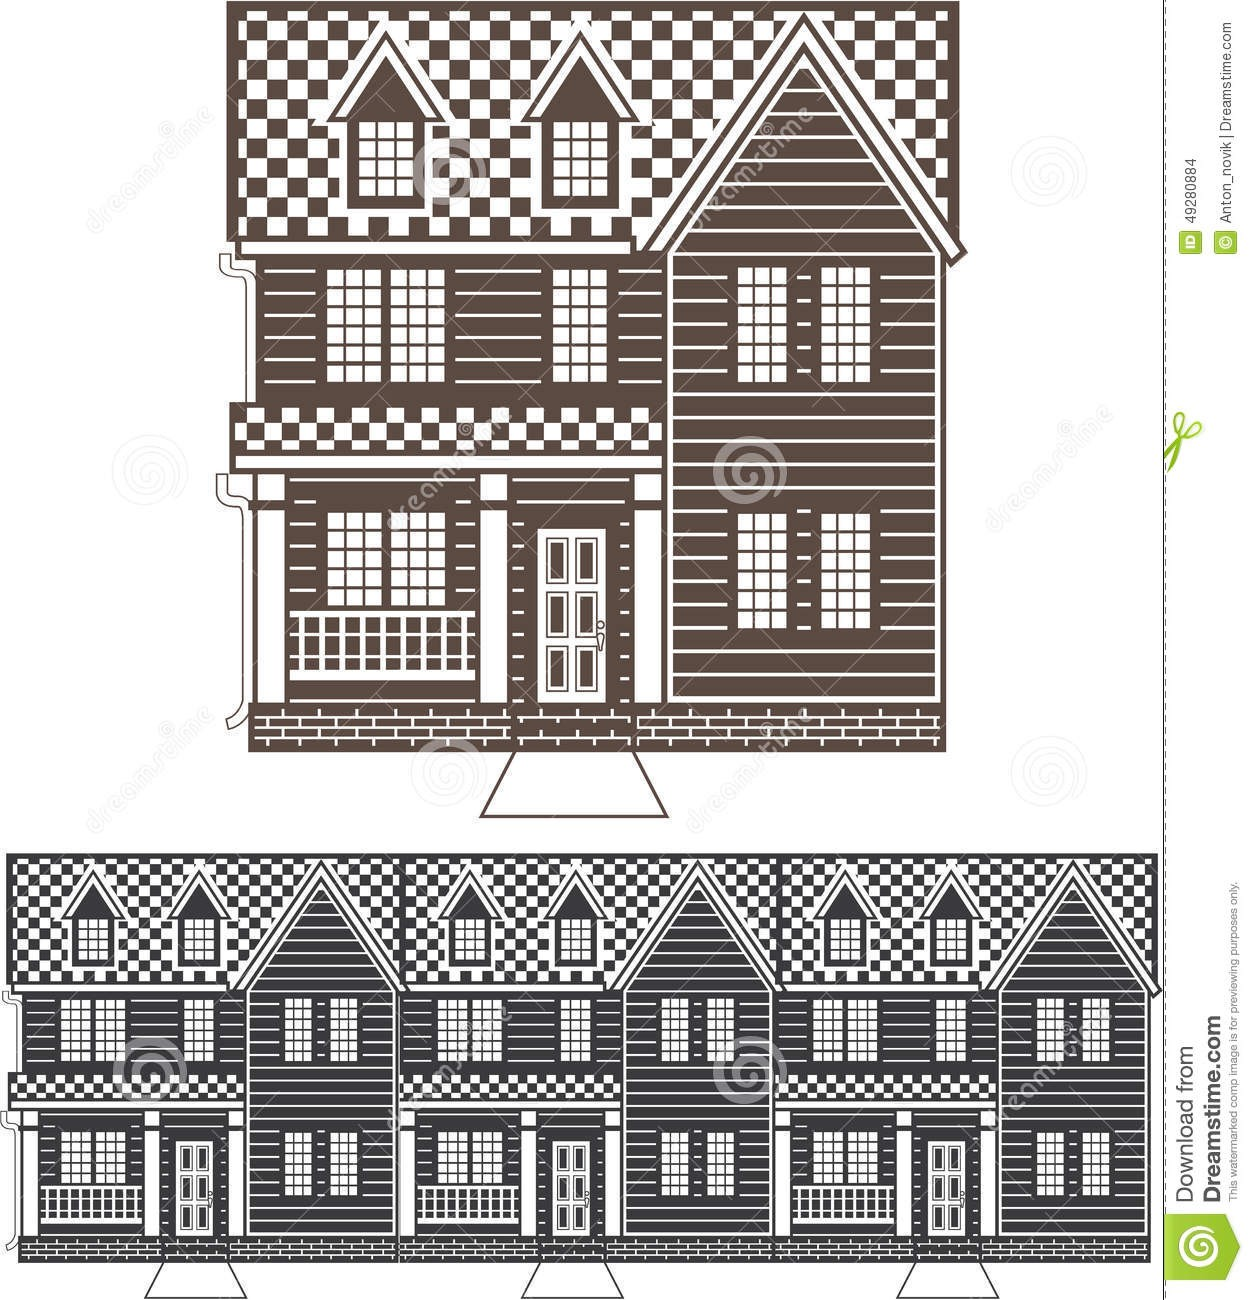 Clipart townhomes picture freeuse stock For Townhouse Clipart Row Townhomes Vector Illustration Clip Art Eps ... picture freeuse stock